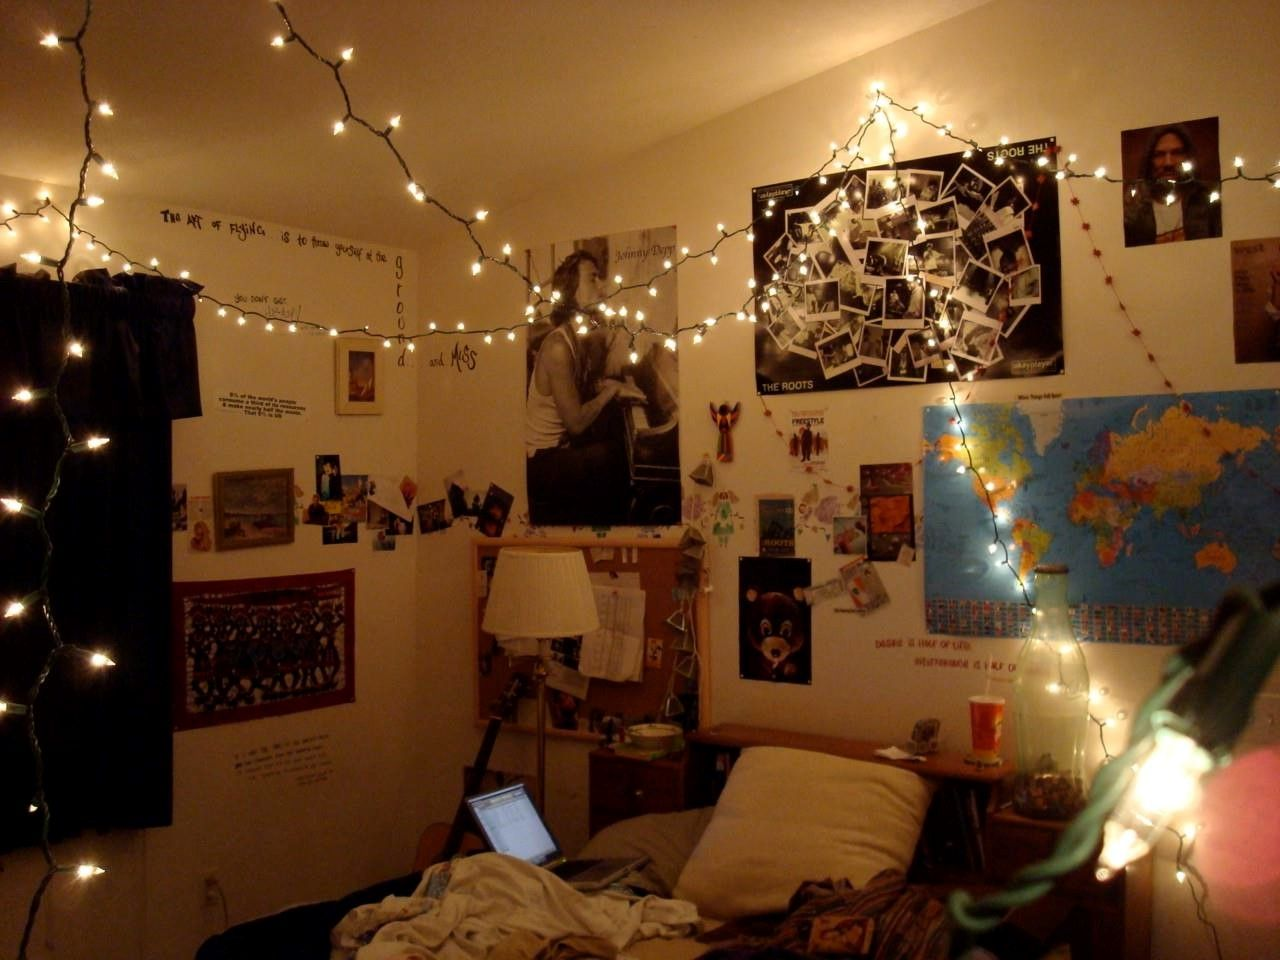 cool bedrooms for teenage girls tumblr lights | Interior Designs ... for Cool Bedrooms For Teenage Girls Tumblr Lights  51ane